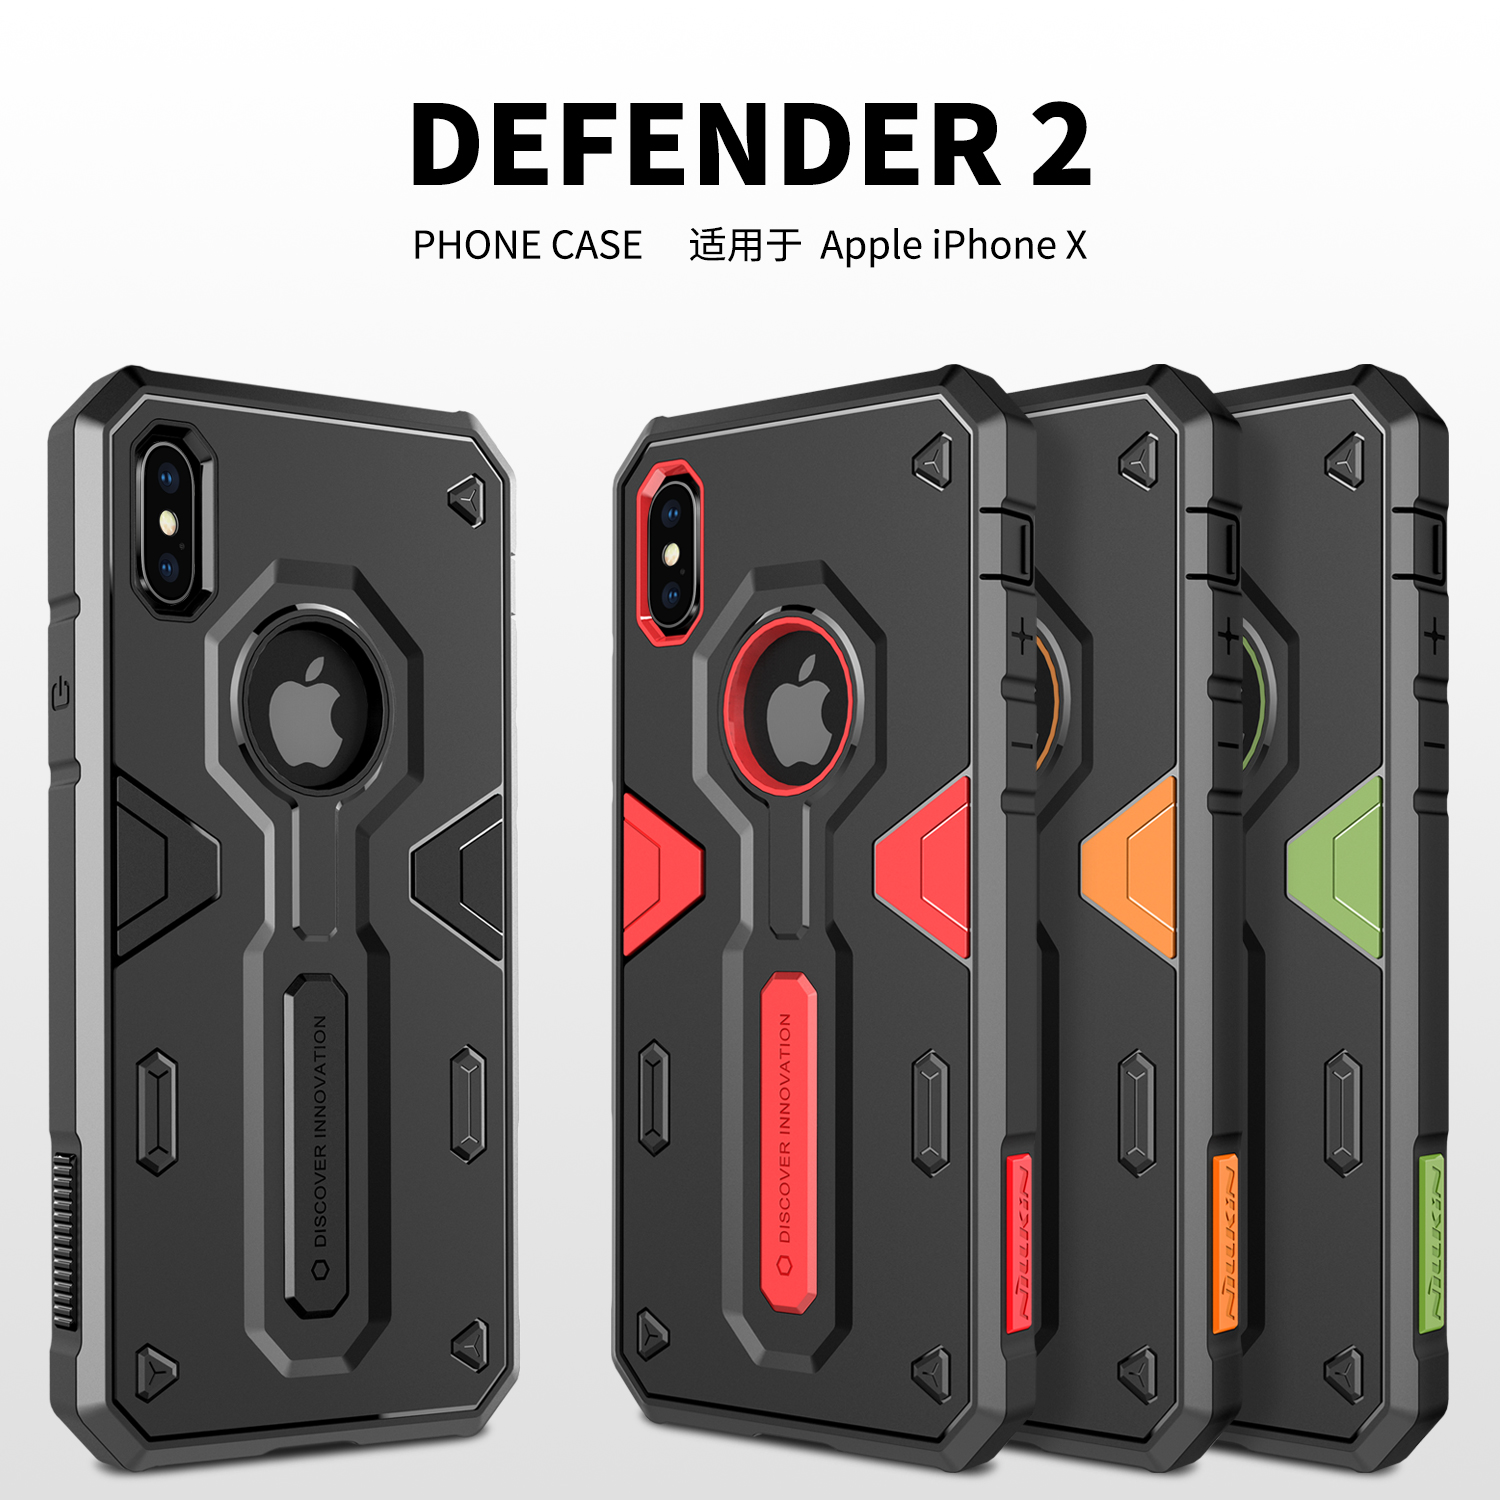 Nillkin Defender II Heavy Duty Armor Case For iPhone X Soft TPU Hard Plastic Hybrid Back Cover for iPhone 10/Ten Shockproof Case